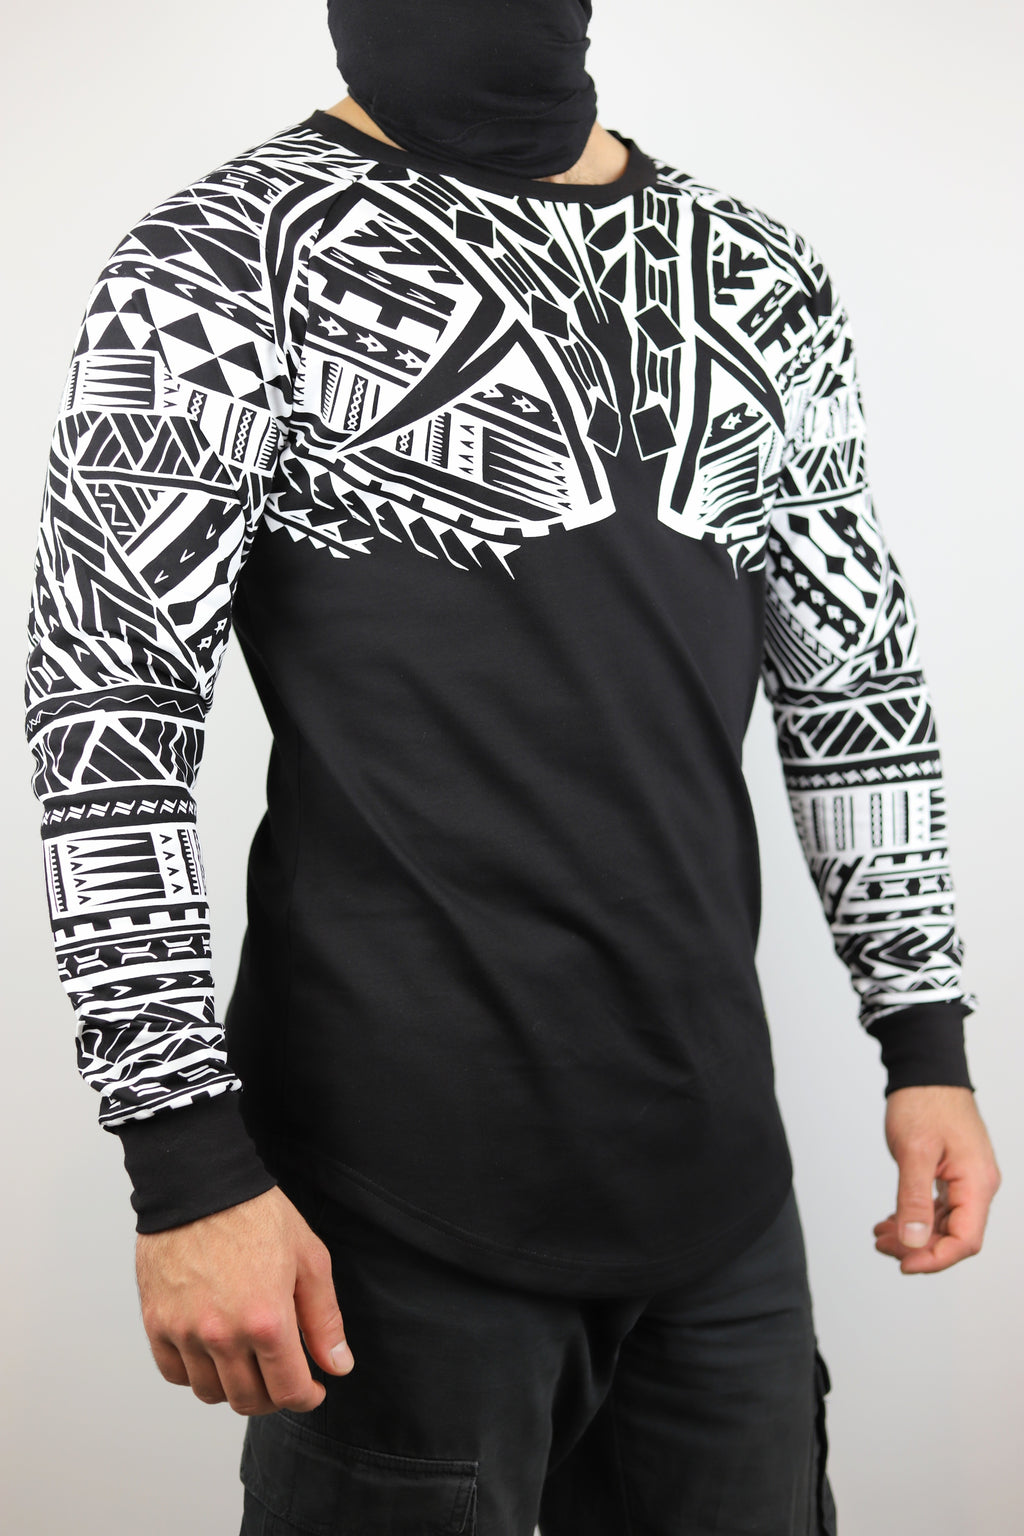 Premium Heavyweight Unisex BLACK Long Sleeve